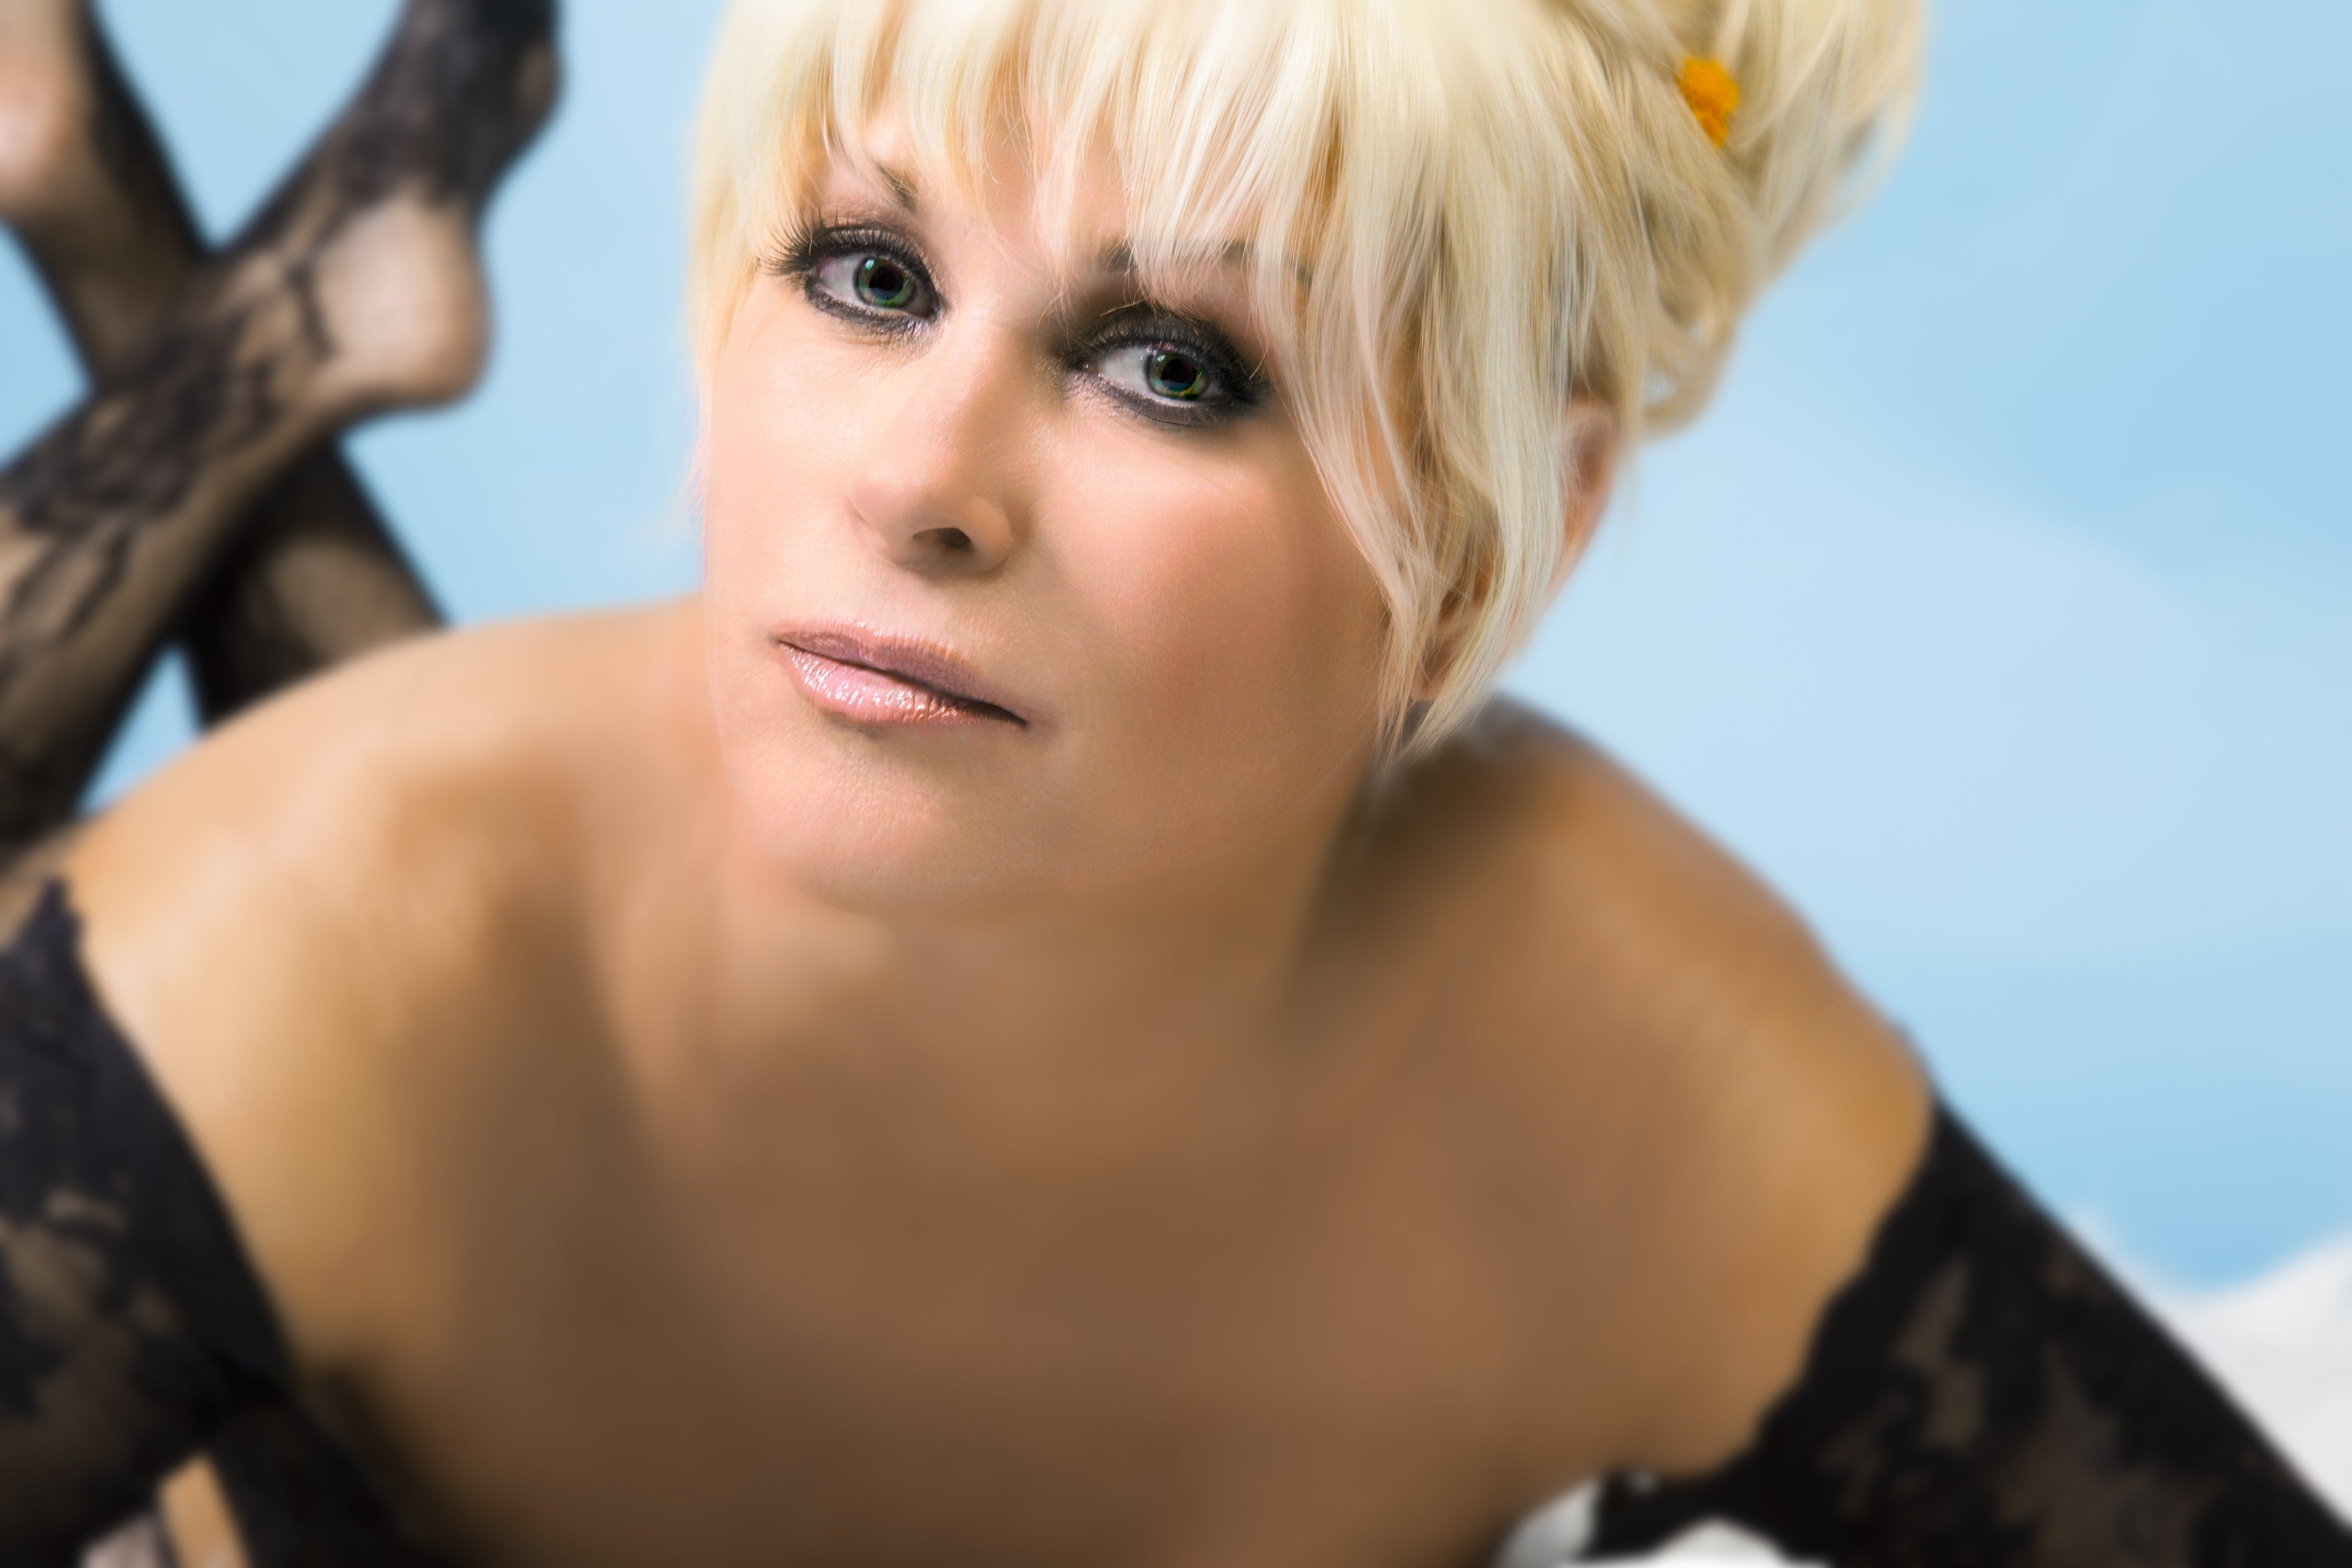 showbiz analysis: lorrie morgan on the power of music and